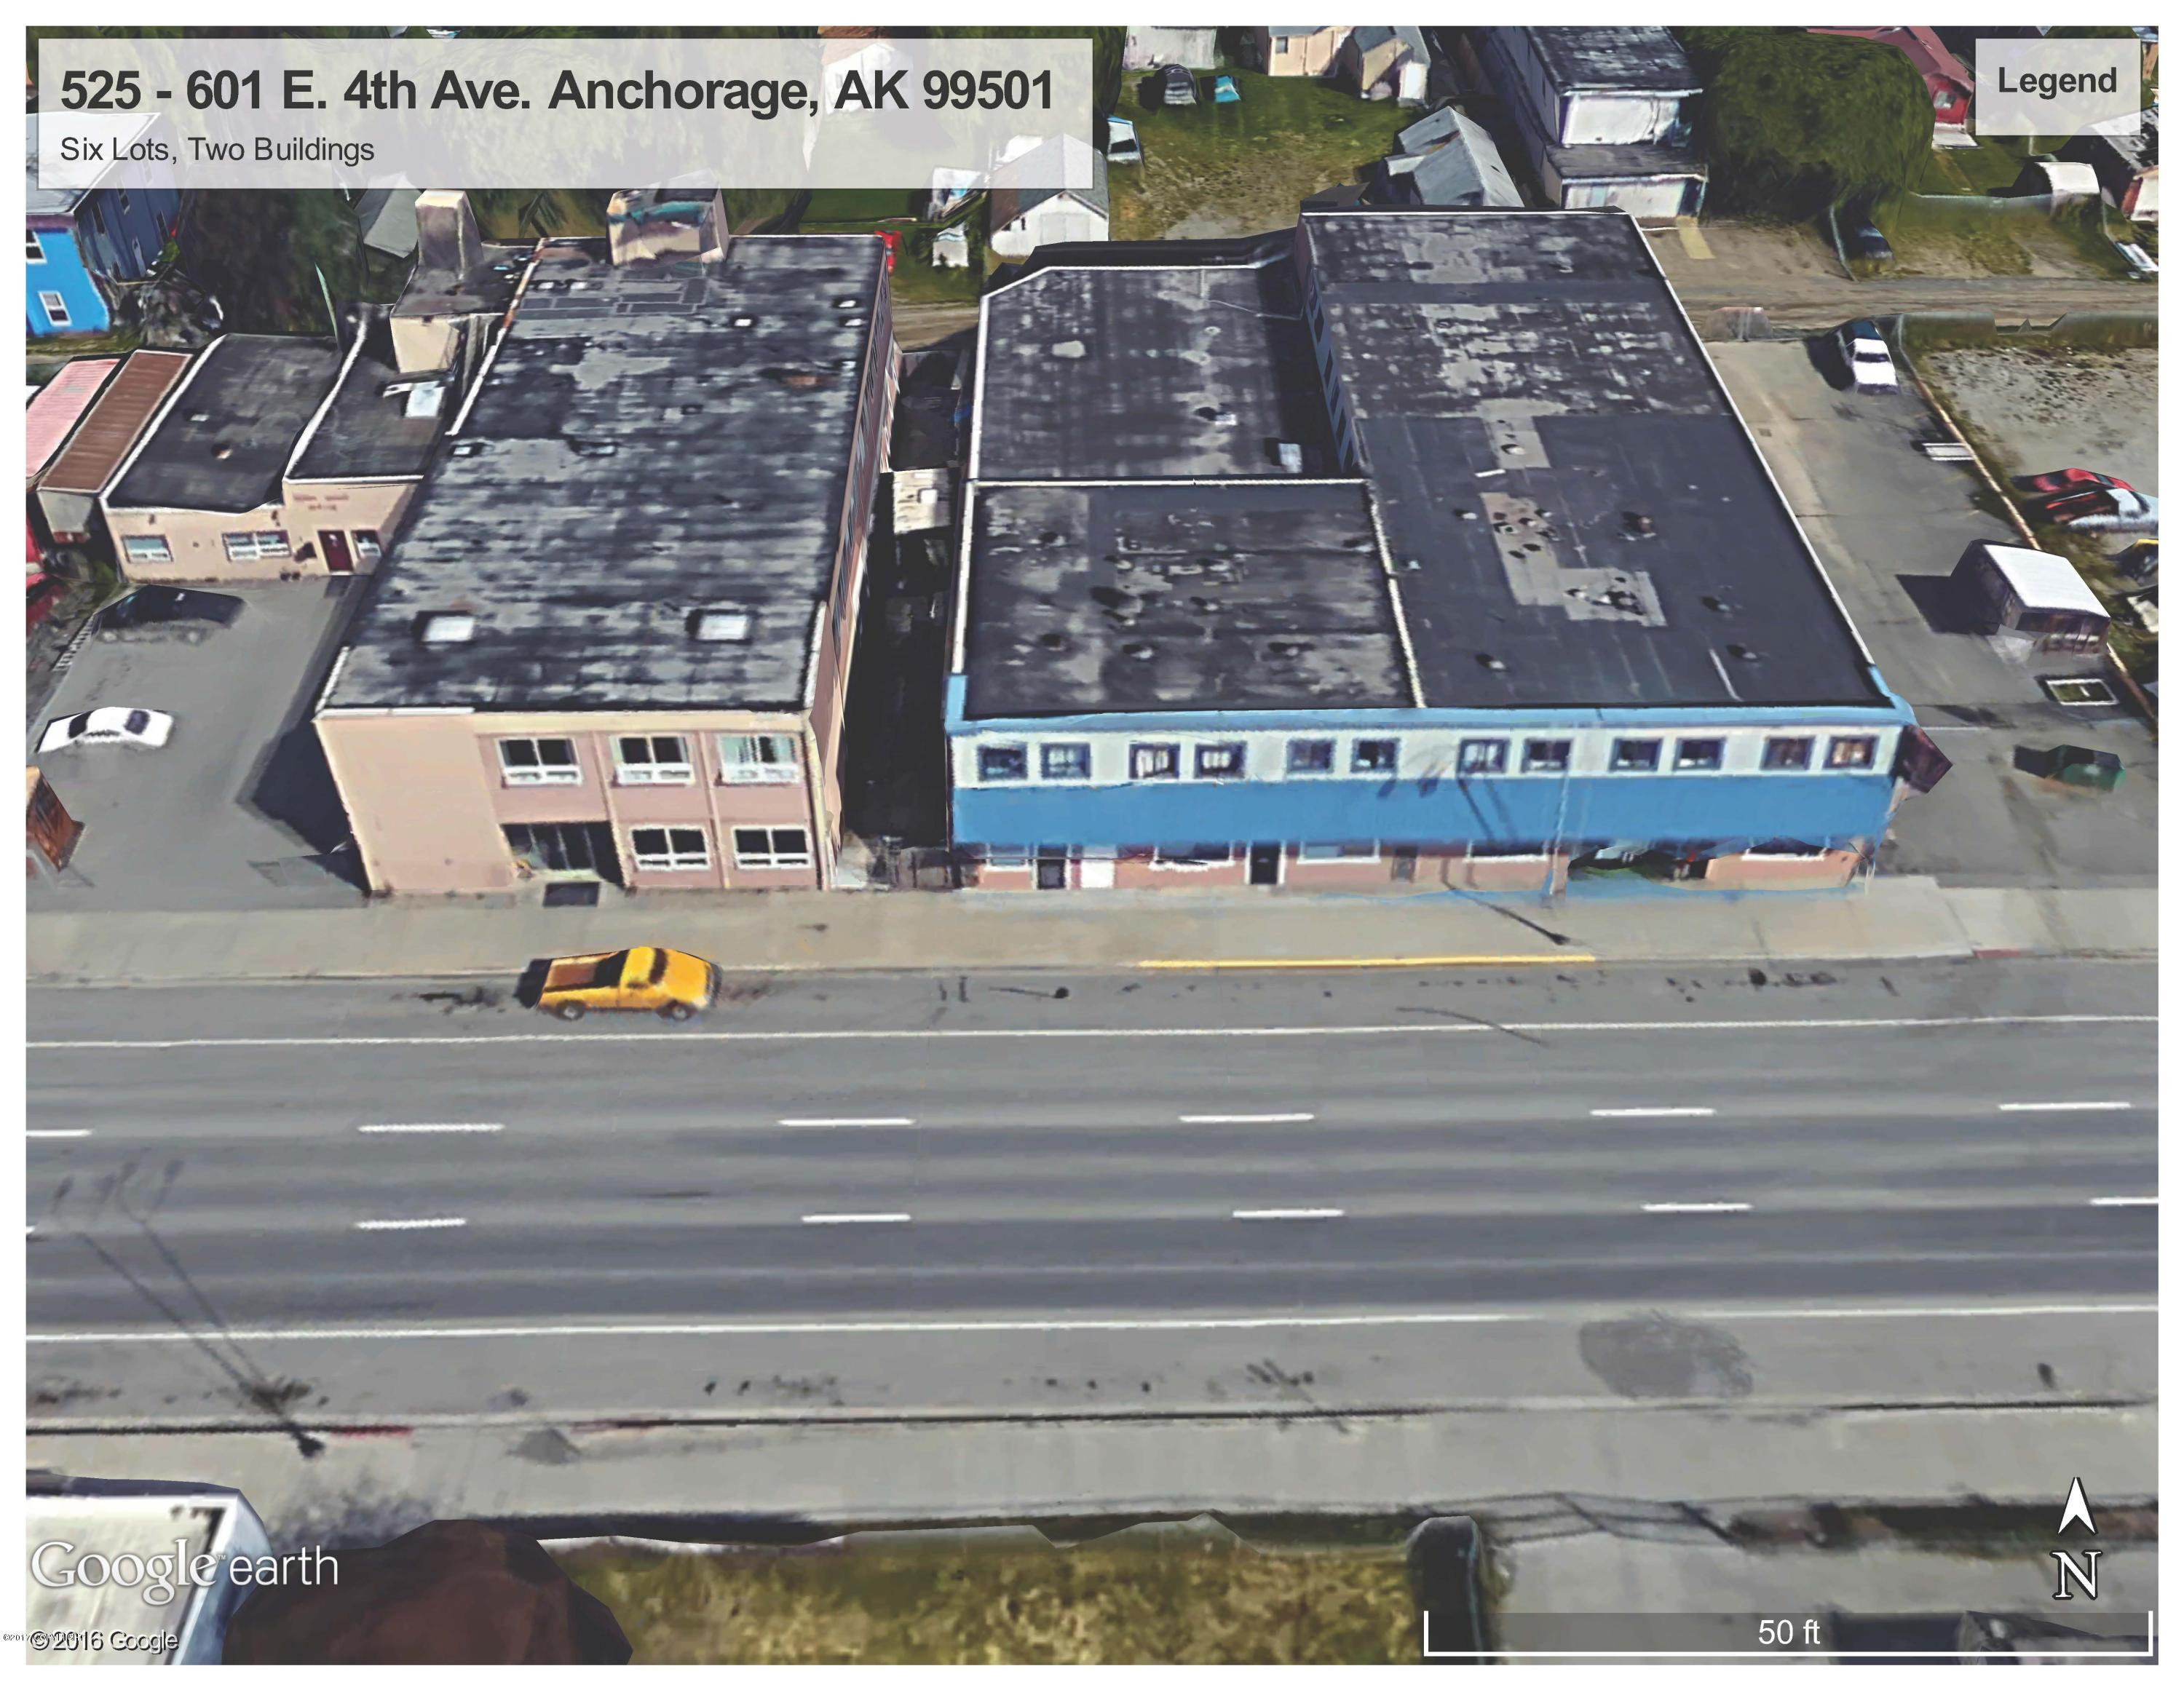 525 E 4th through 601 Avenue, Anchorage, AK 99501